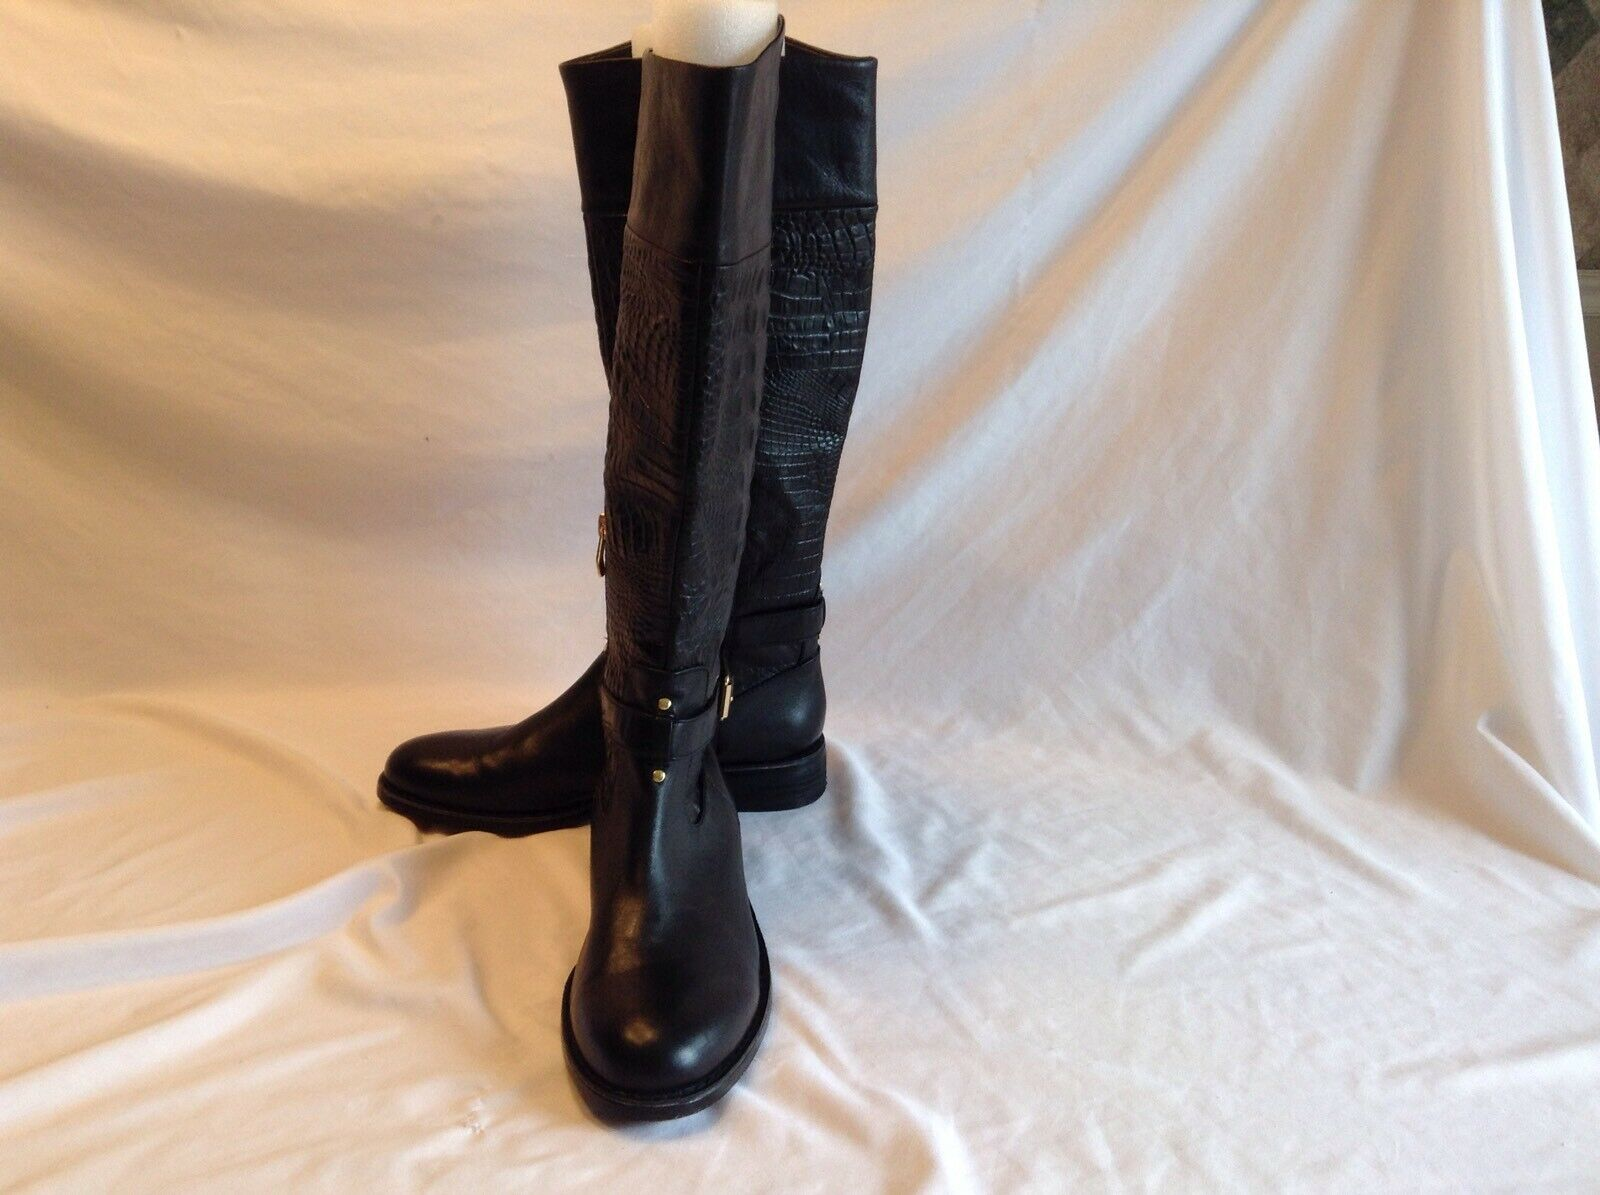 Vince Camuto ladies black leather knee high riding boots in size 8 medium